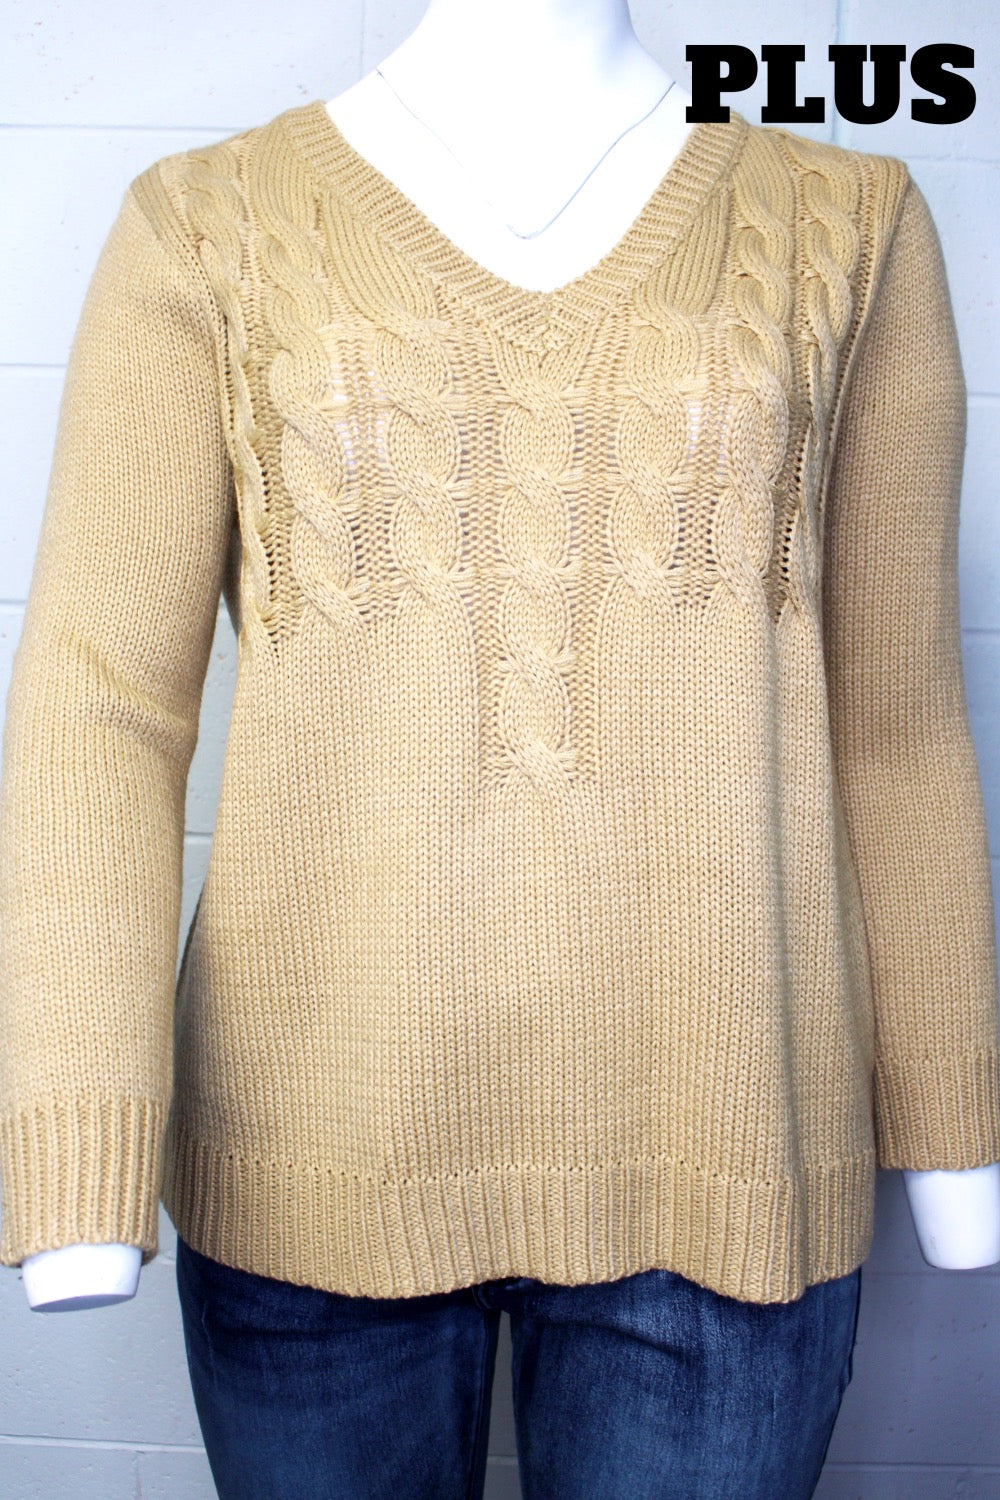 Women's Plus Size Long Sleeve V-Neck Knitted Sweater